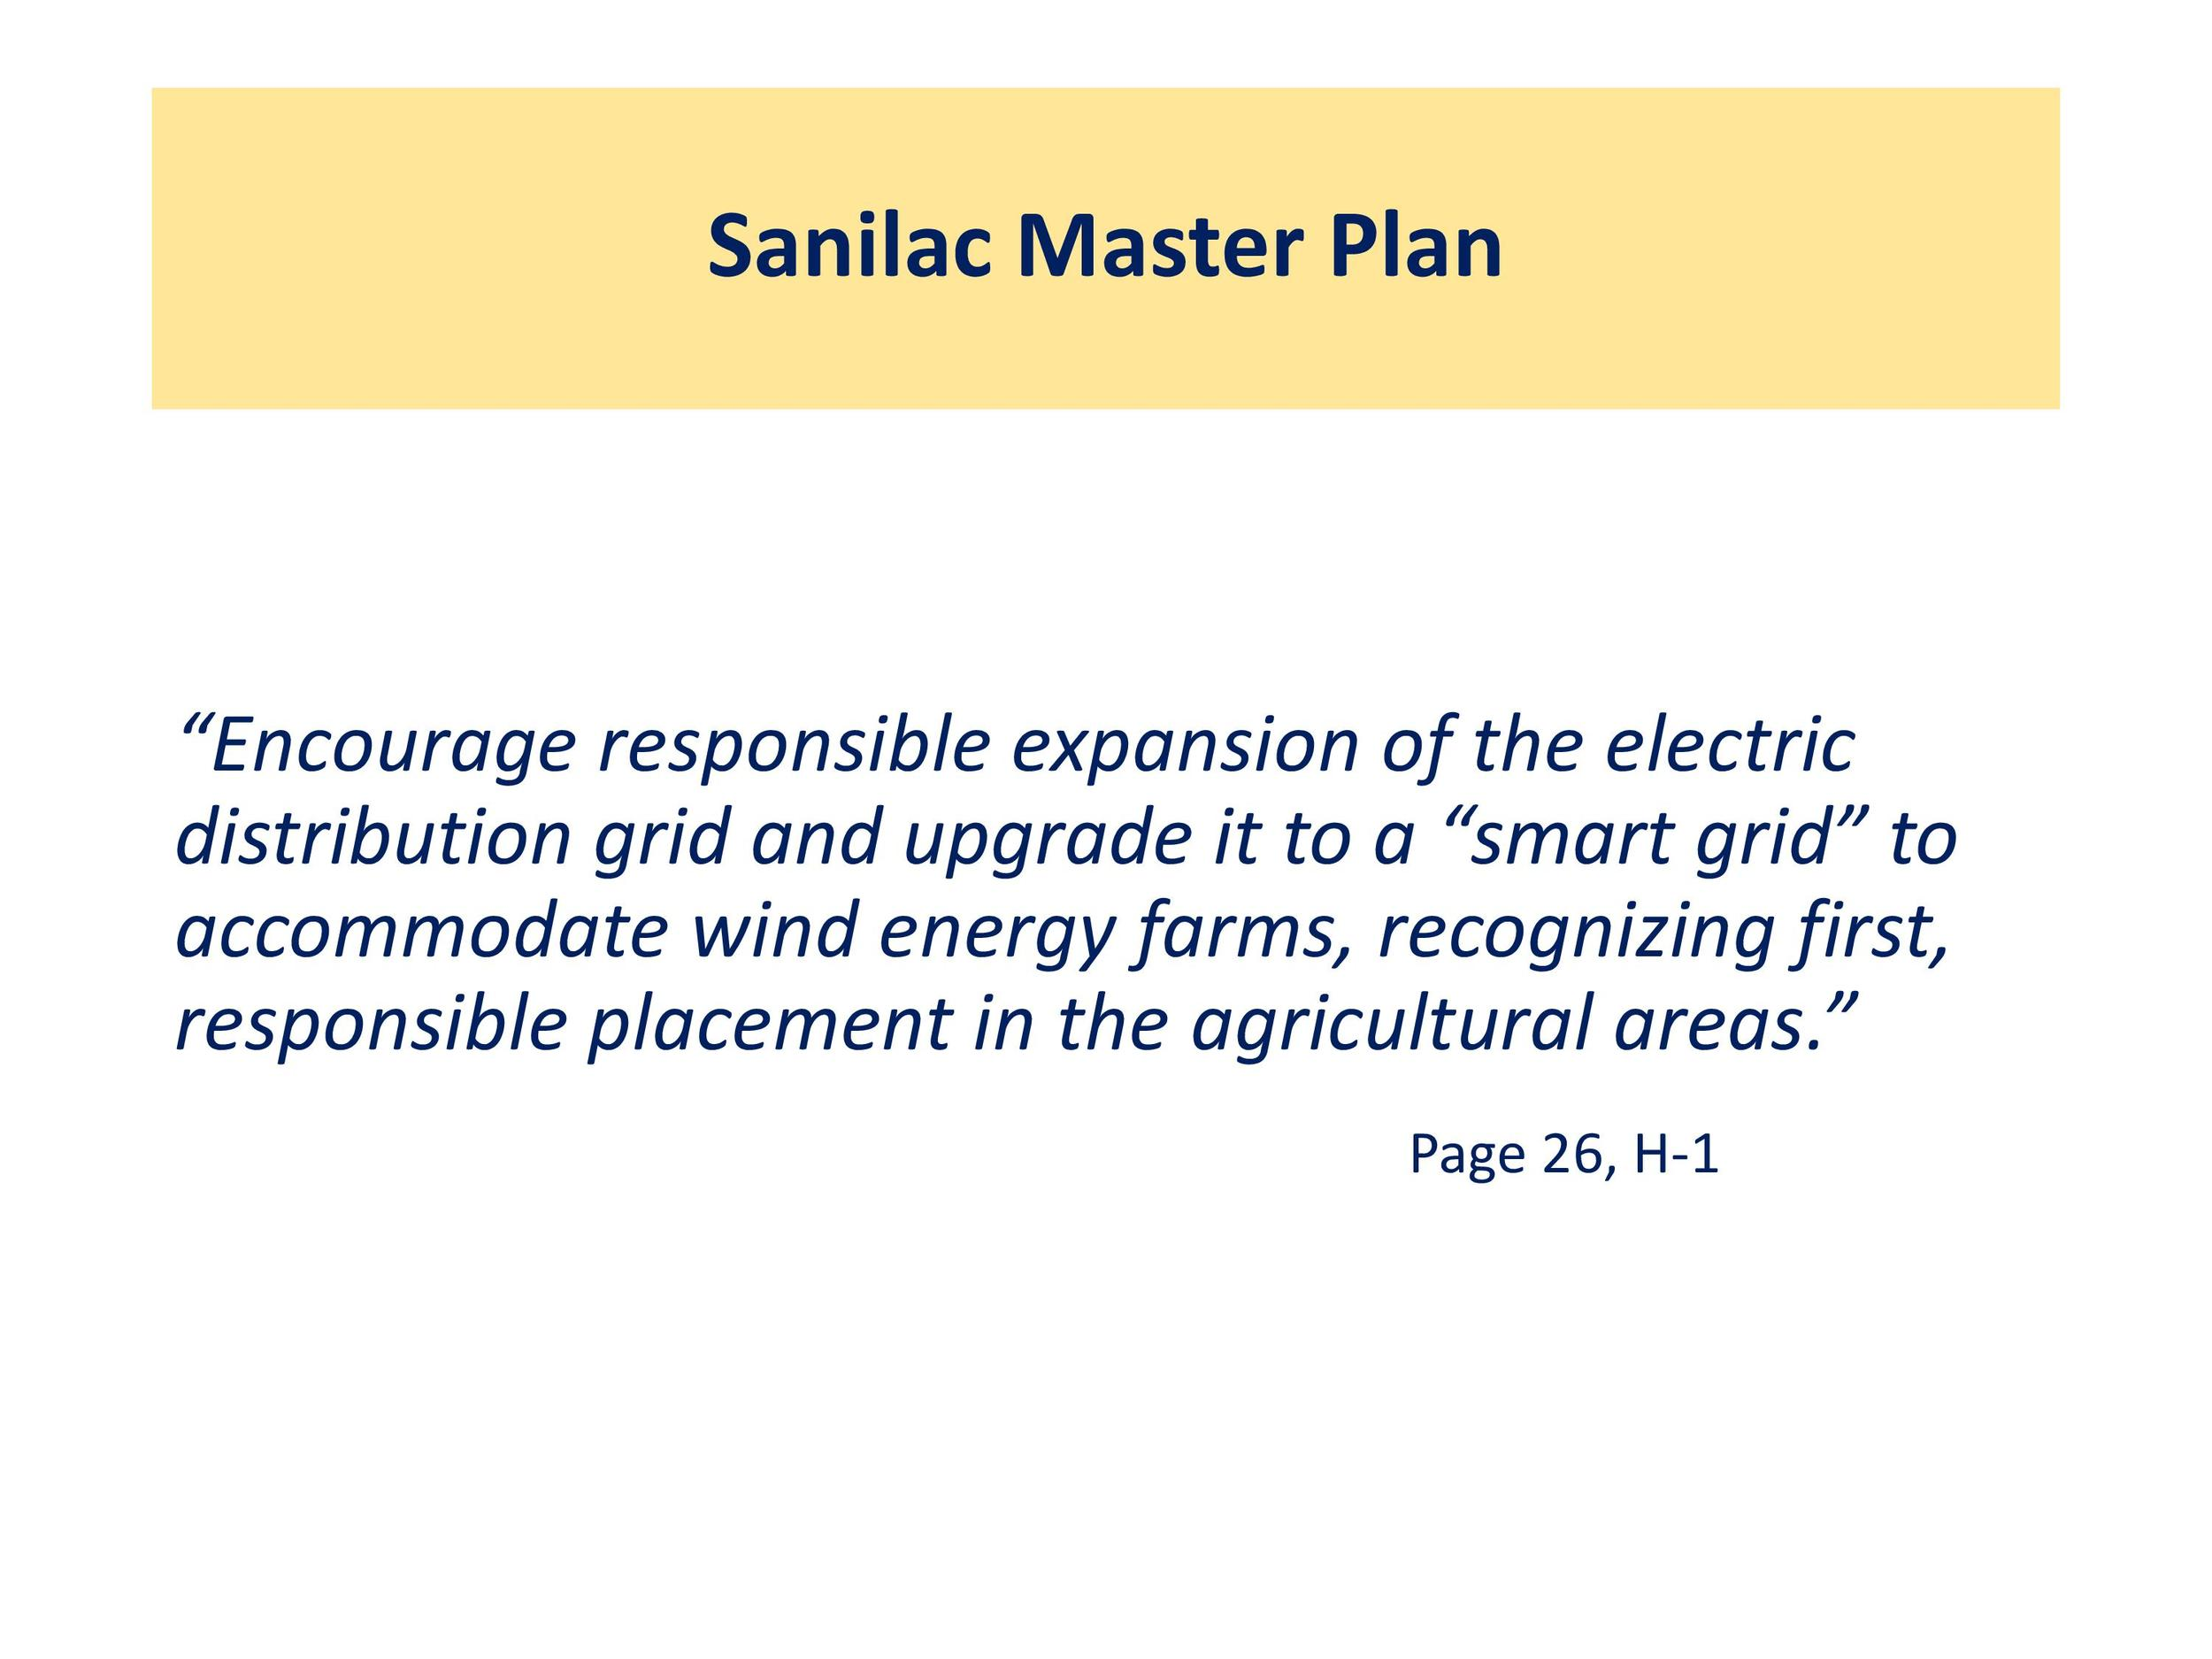 Wind Energy in Sanilac-page-042.jpg